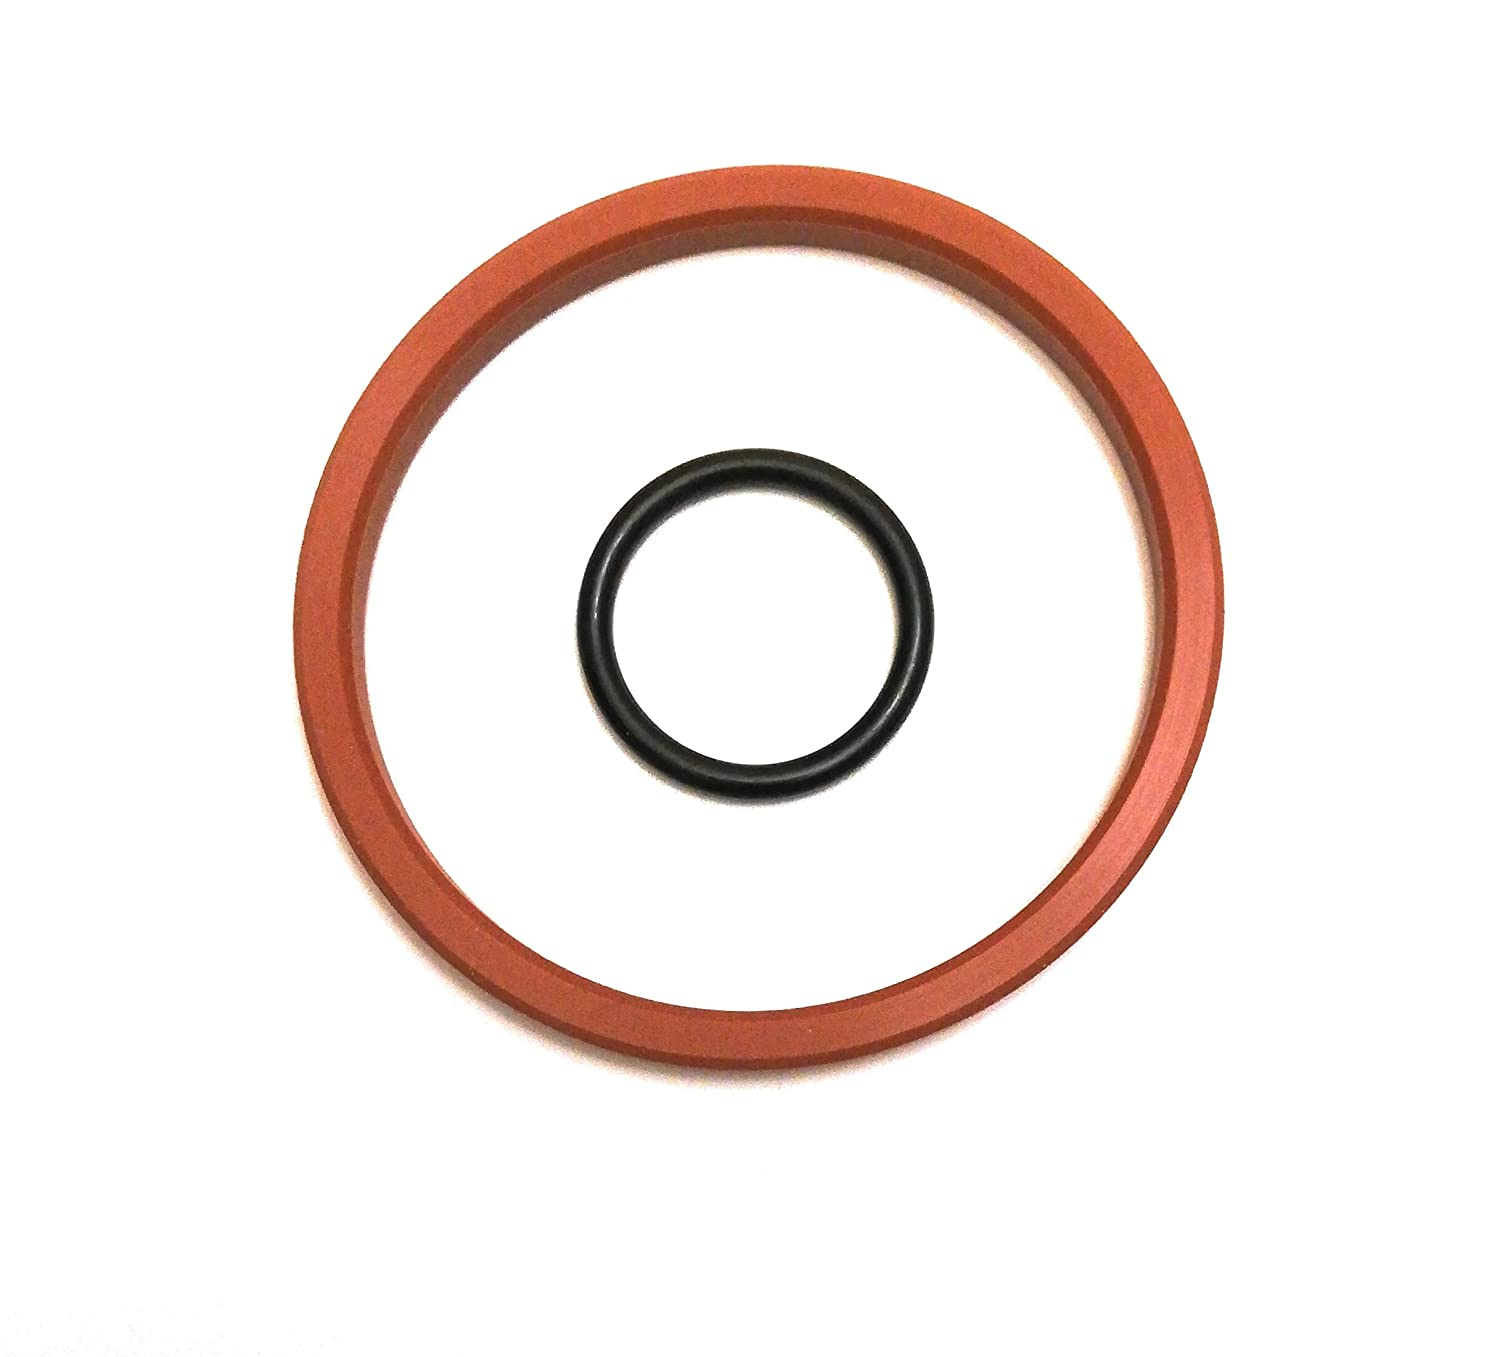 Oil leak Repair replacement seal kit Oil Cooler O-Ring Gasket Set For 2001-2004 Nissan Pathfinder 2001-2004 Xterra 3.5L Engine